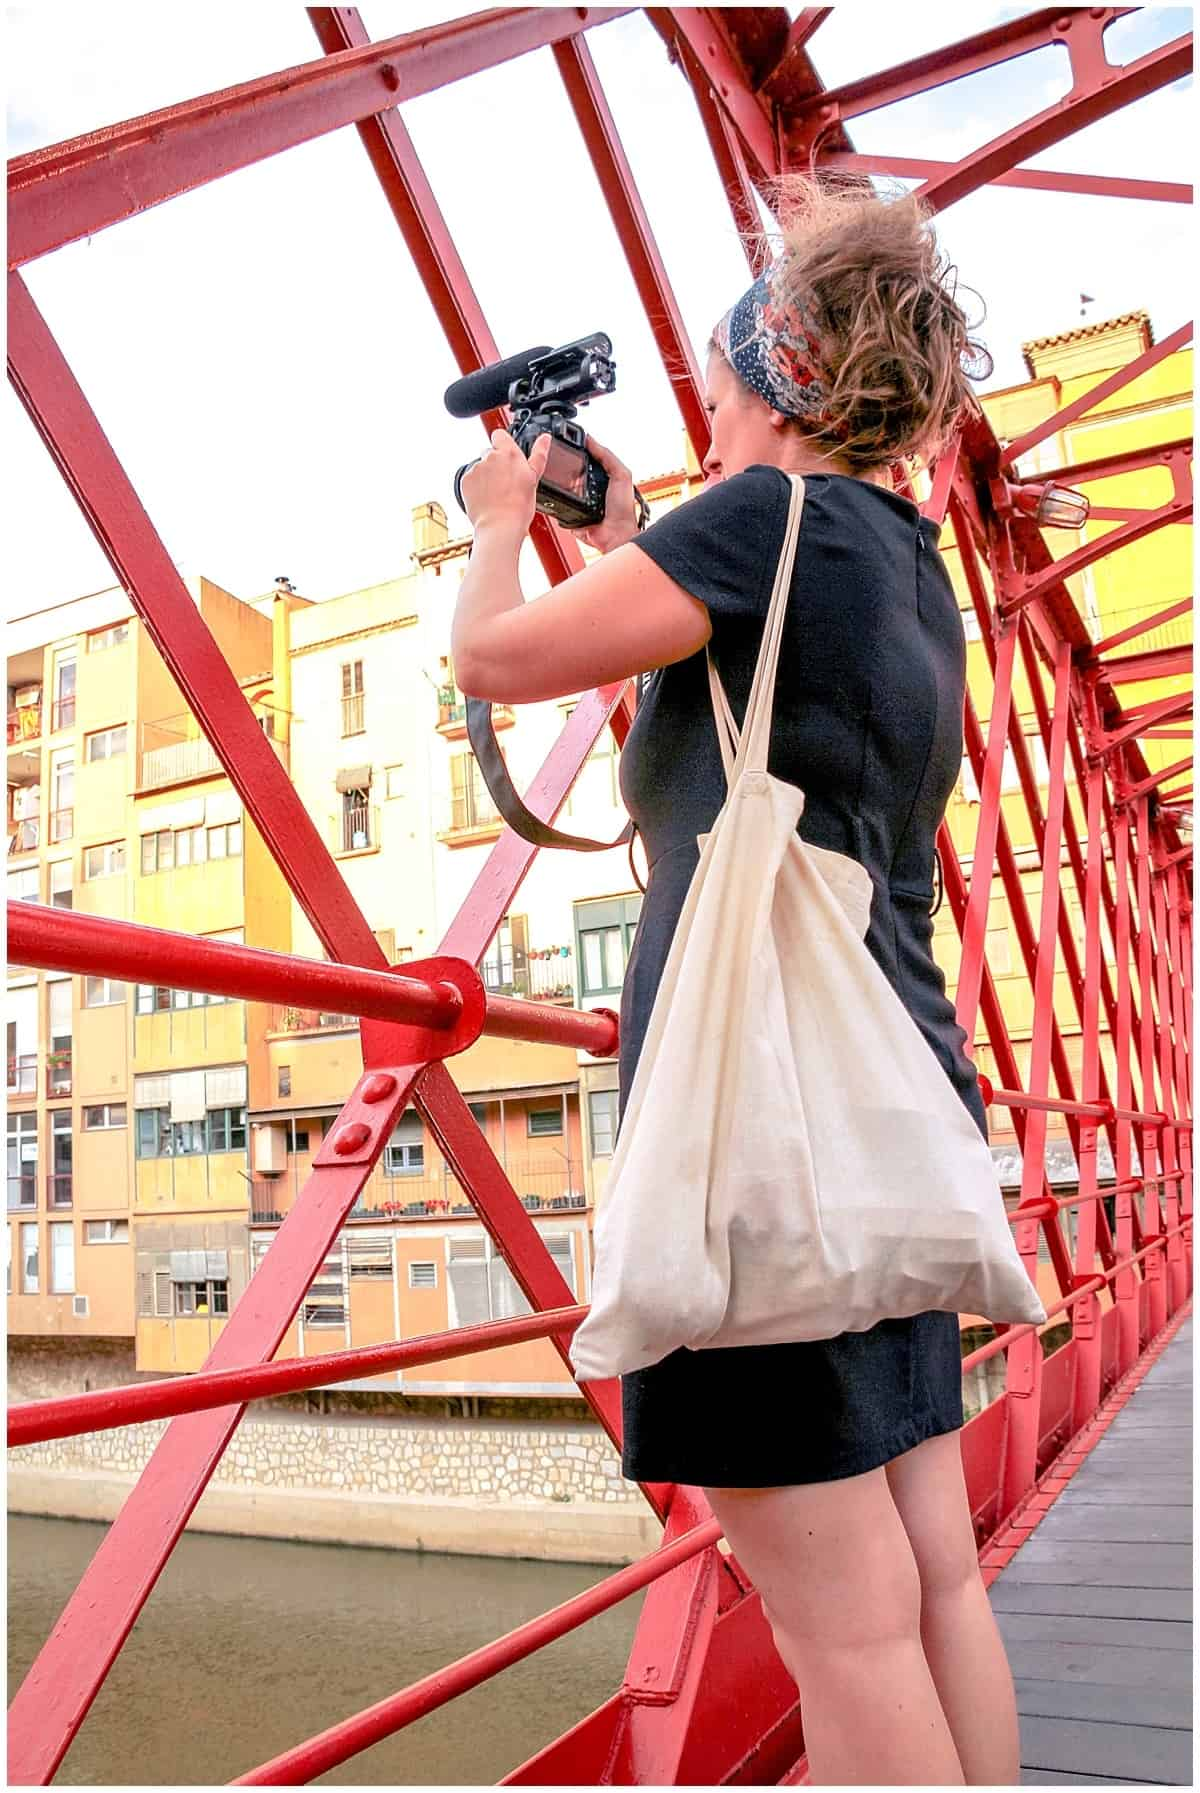 Yvonne Zagerman vlogging in Girona